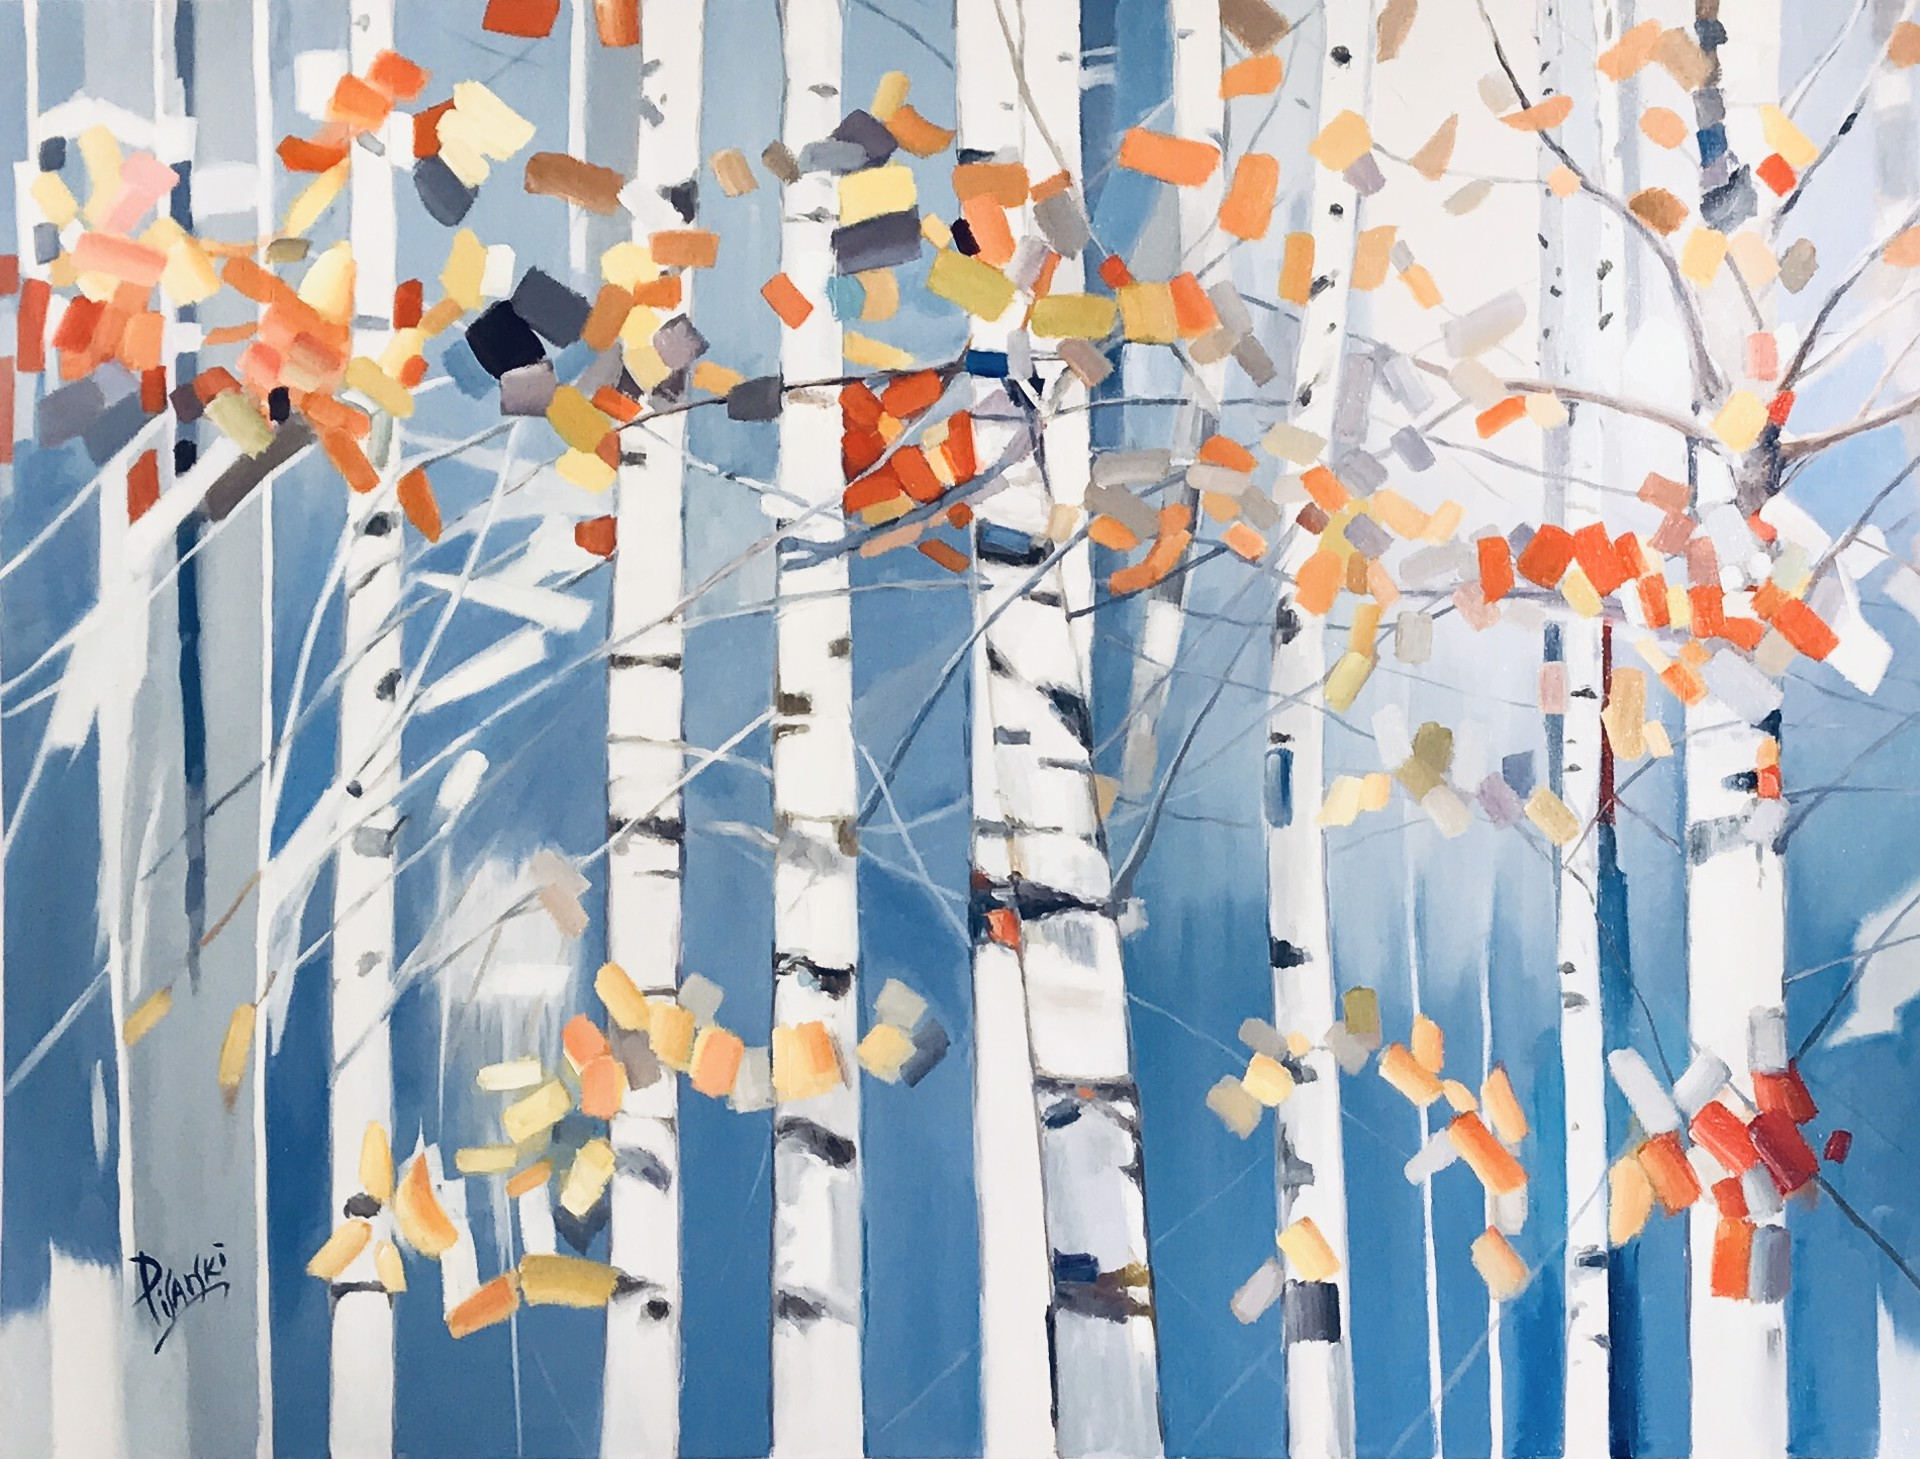 WHITE TREES WITH ABSTRACT LEAVES by PISARSKI